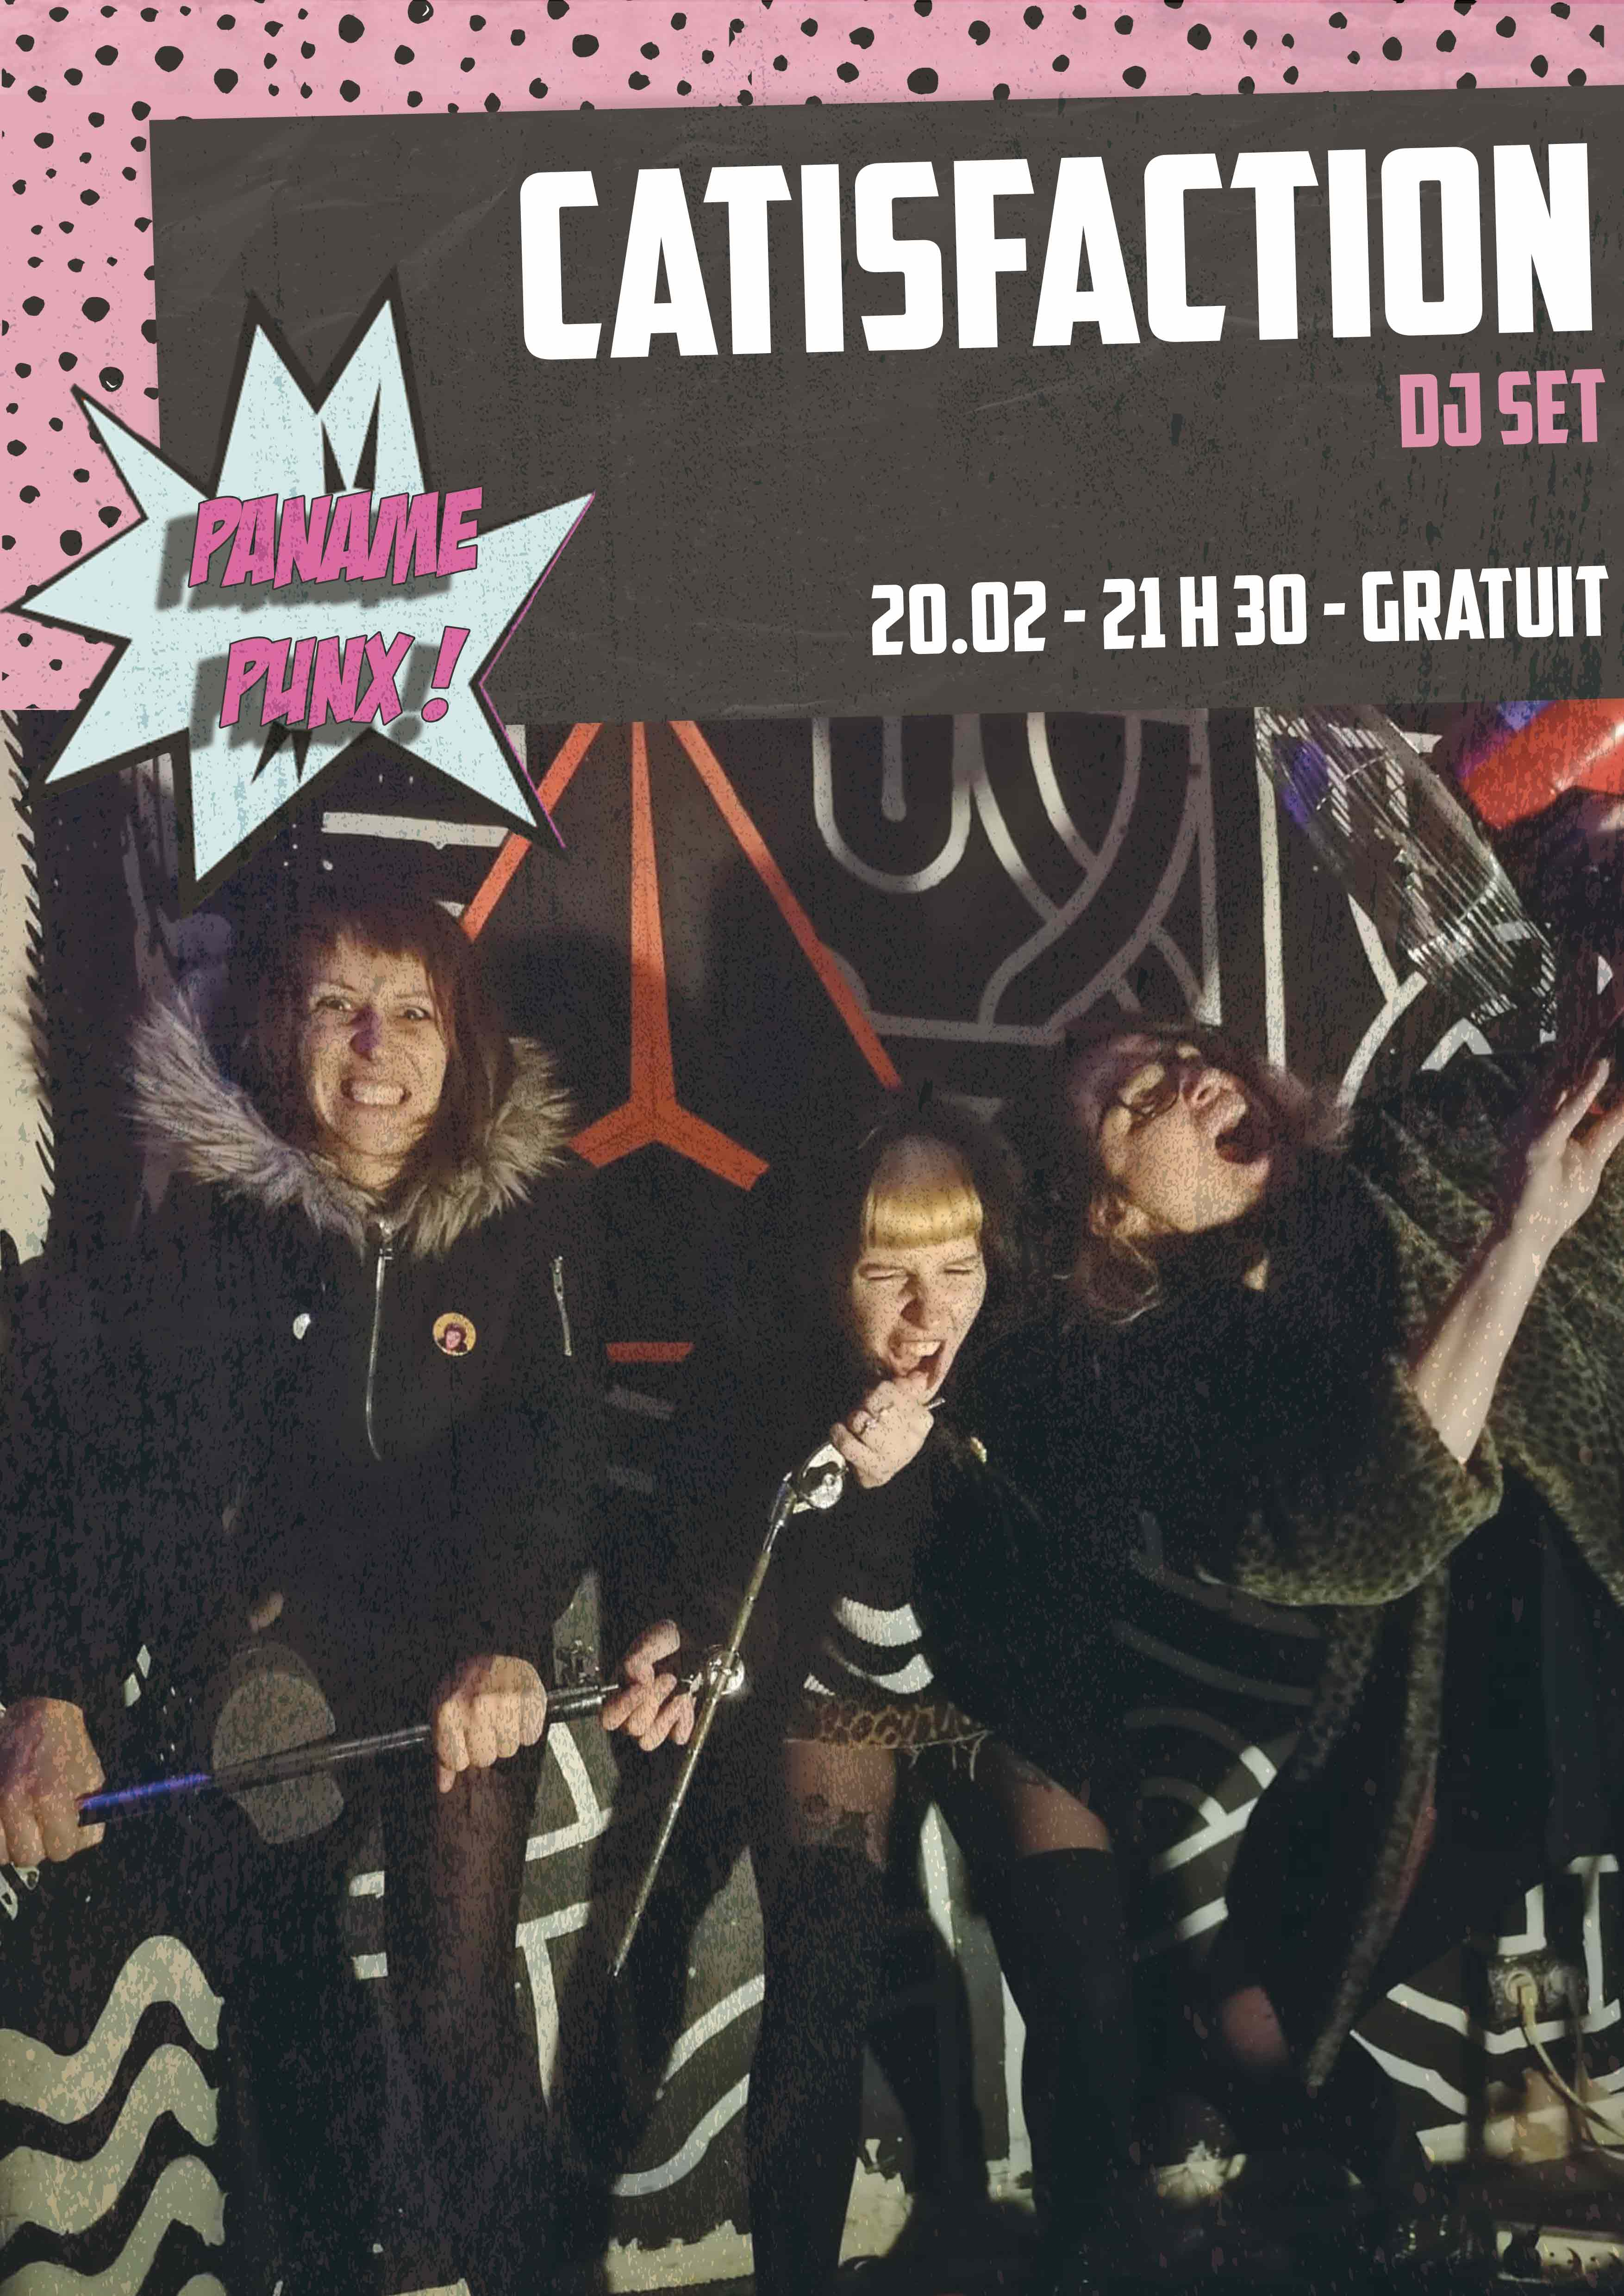 PANAME PUNX : CATISFACTION // 20.02